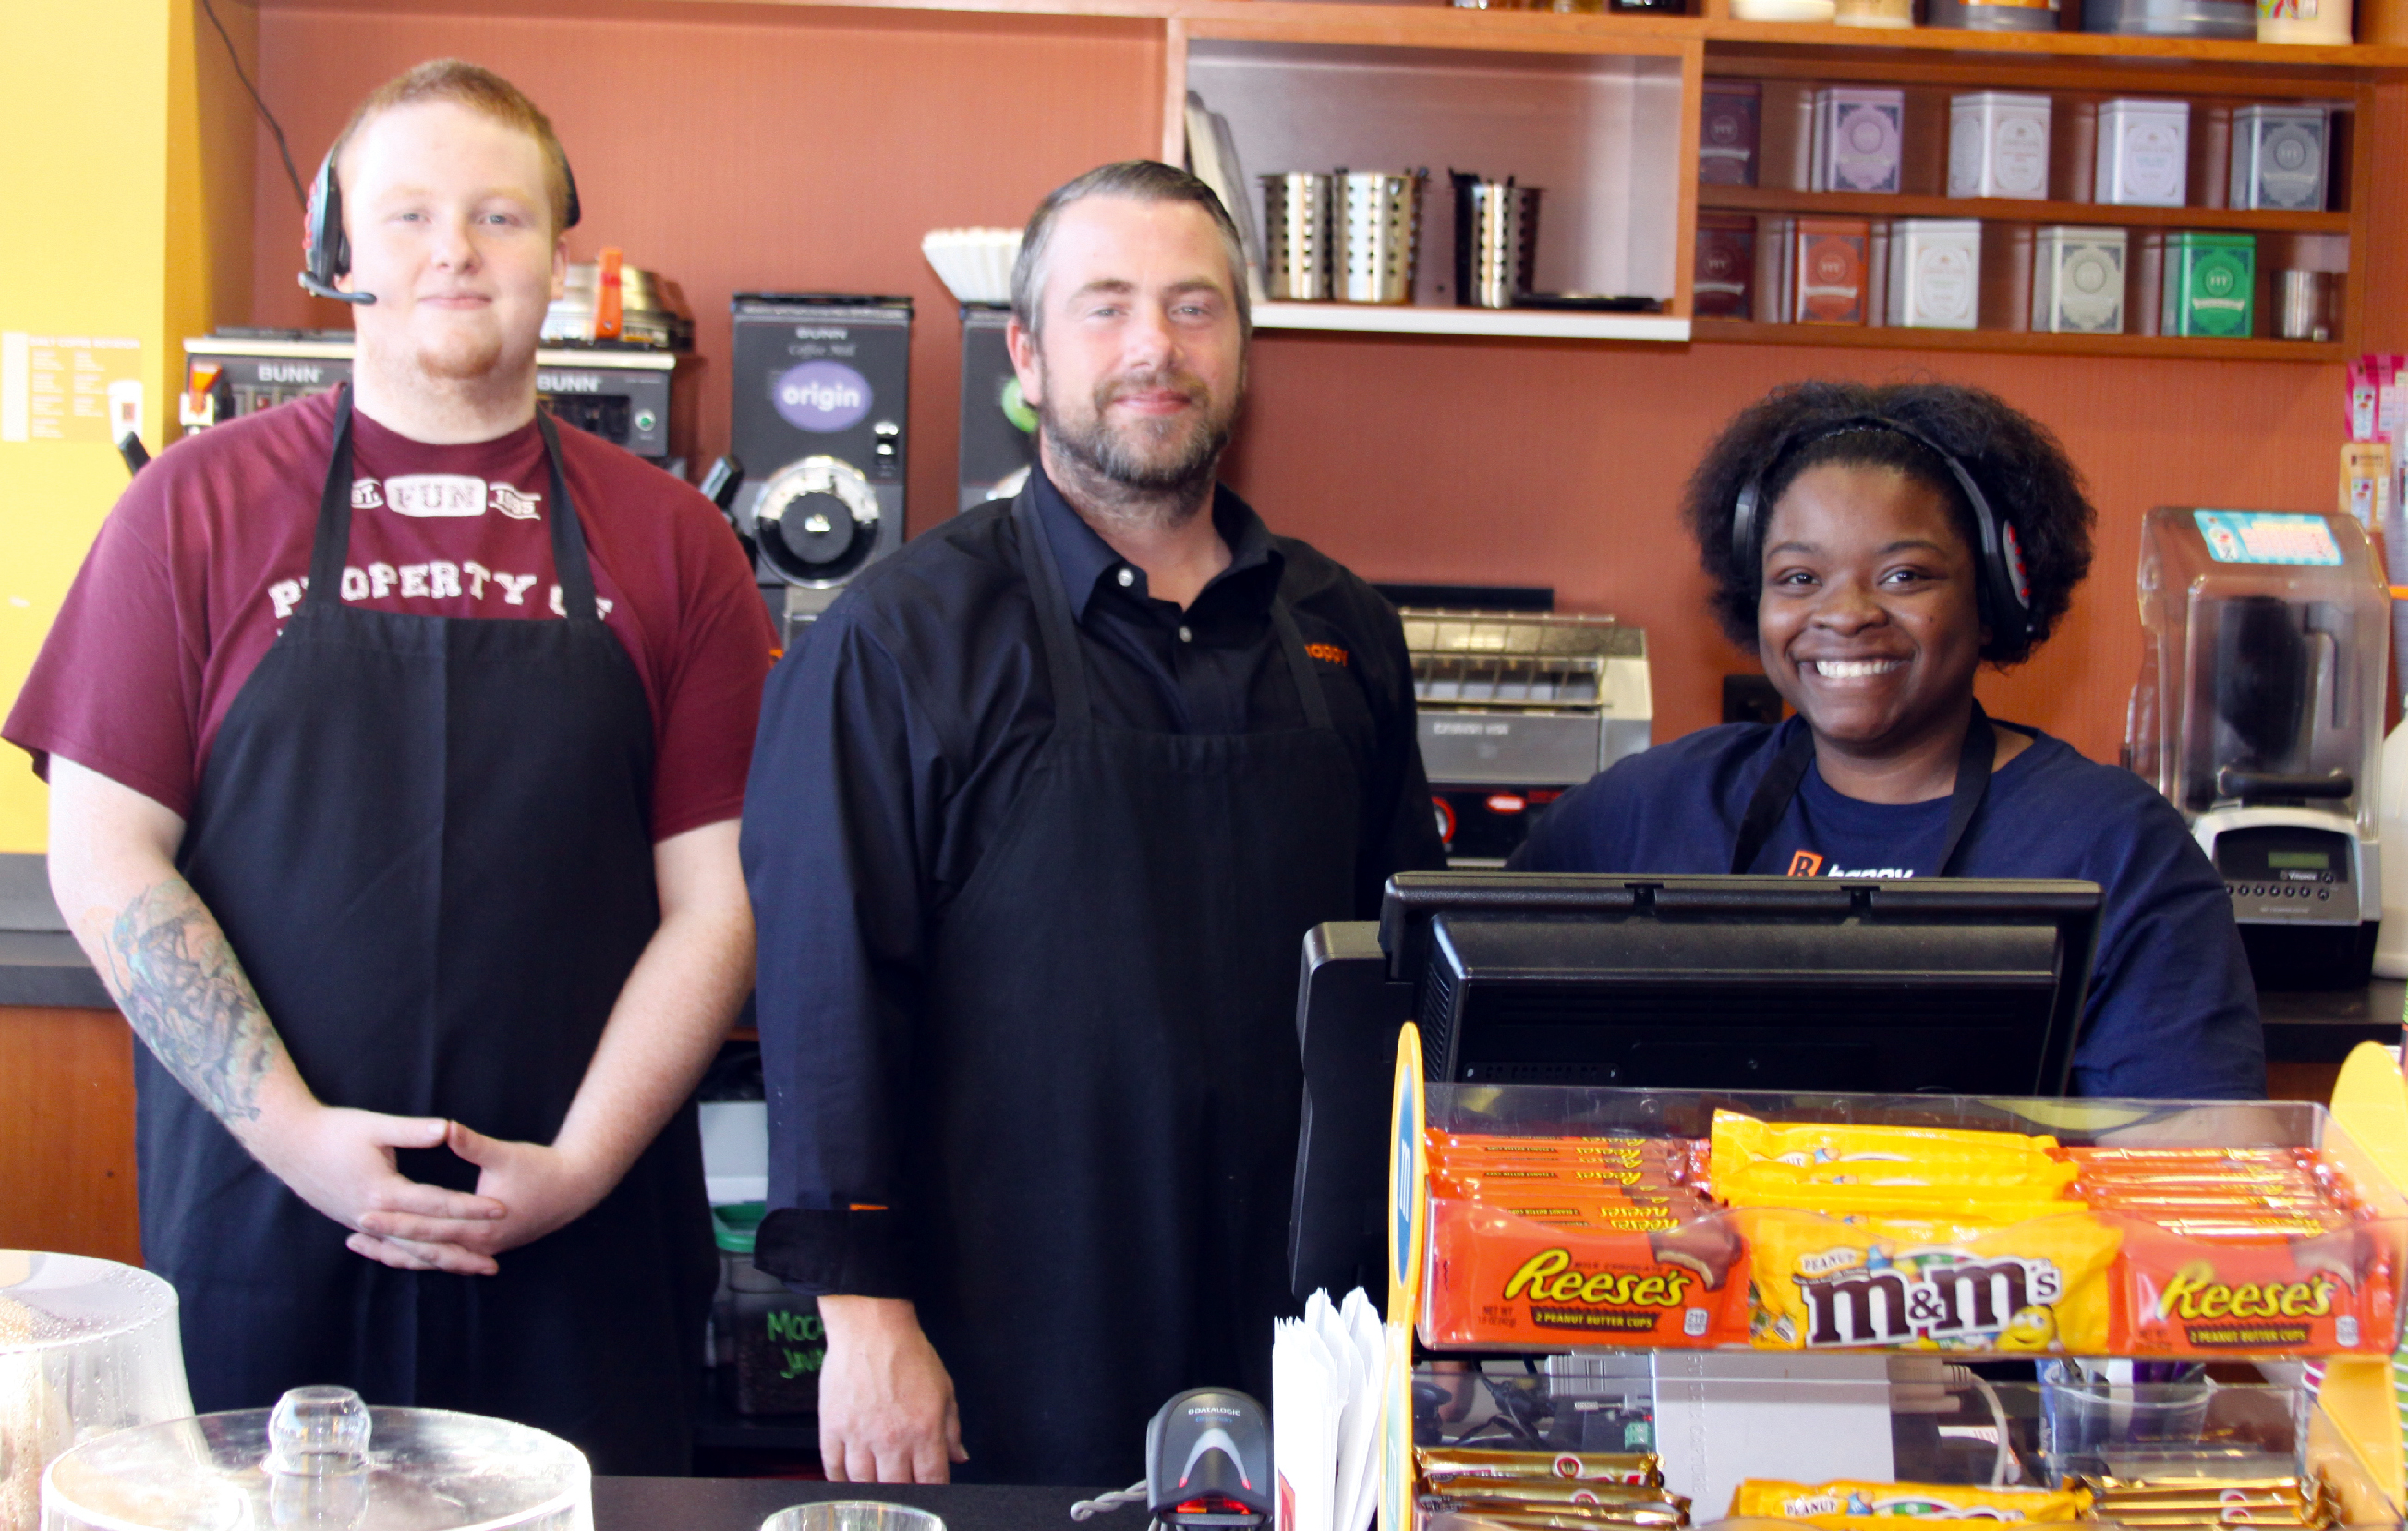 Biggby Coffee's Austin Hanner, Derek Shear and Destiny Walker at ready to serve you a fresh beverage.